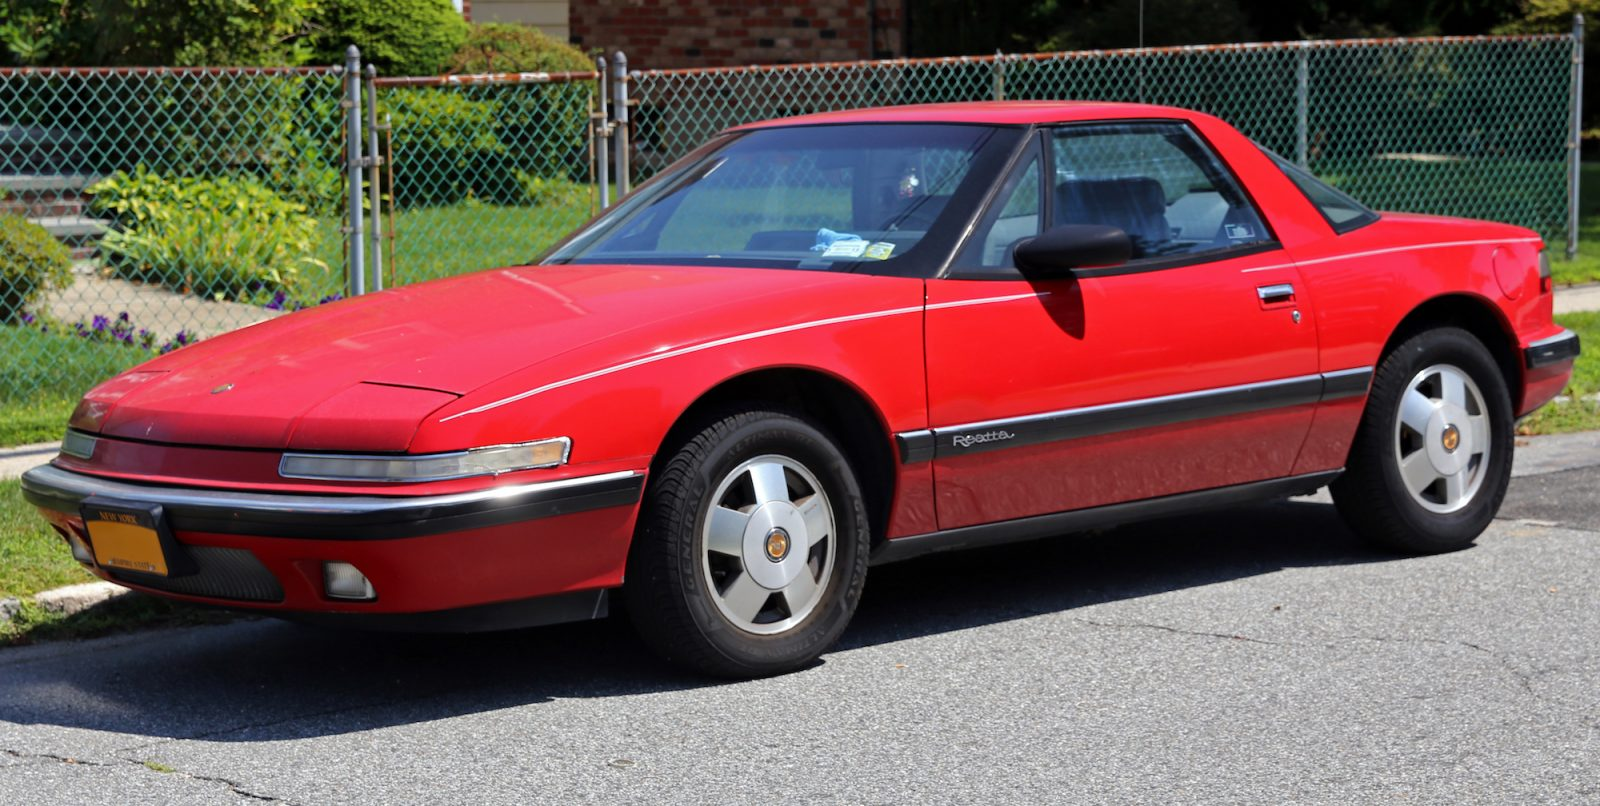 14 mai 1991 – Fin de la production de la Buick Reatta